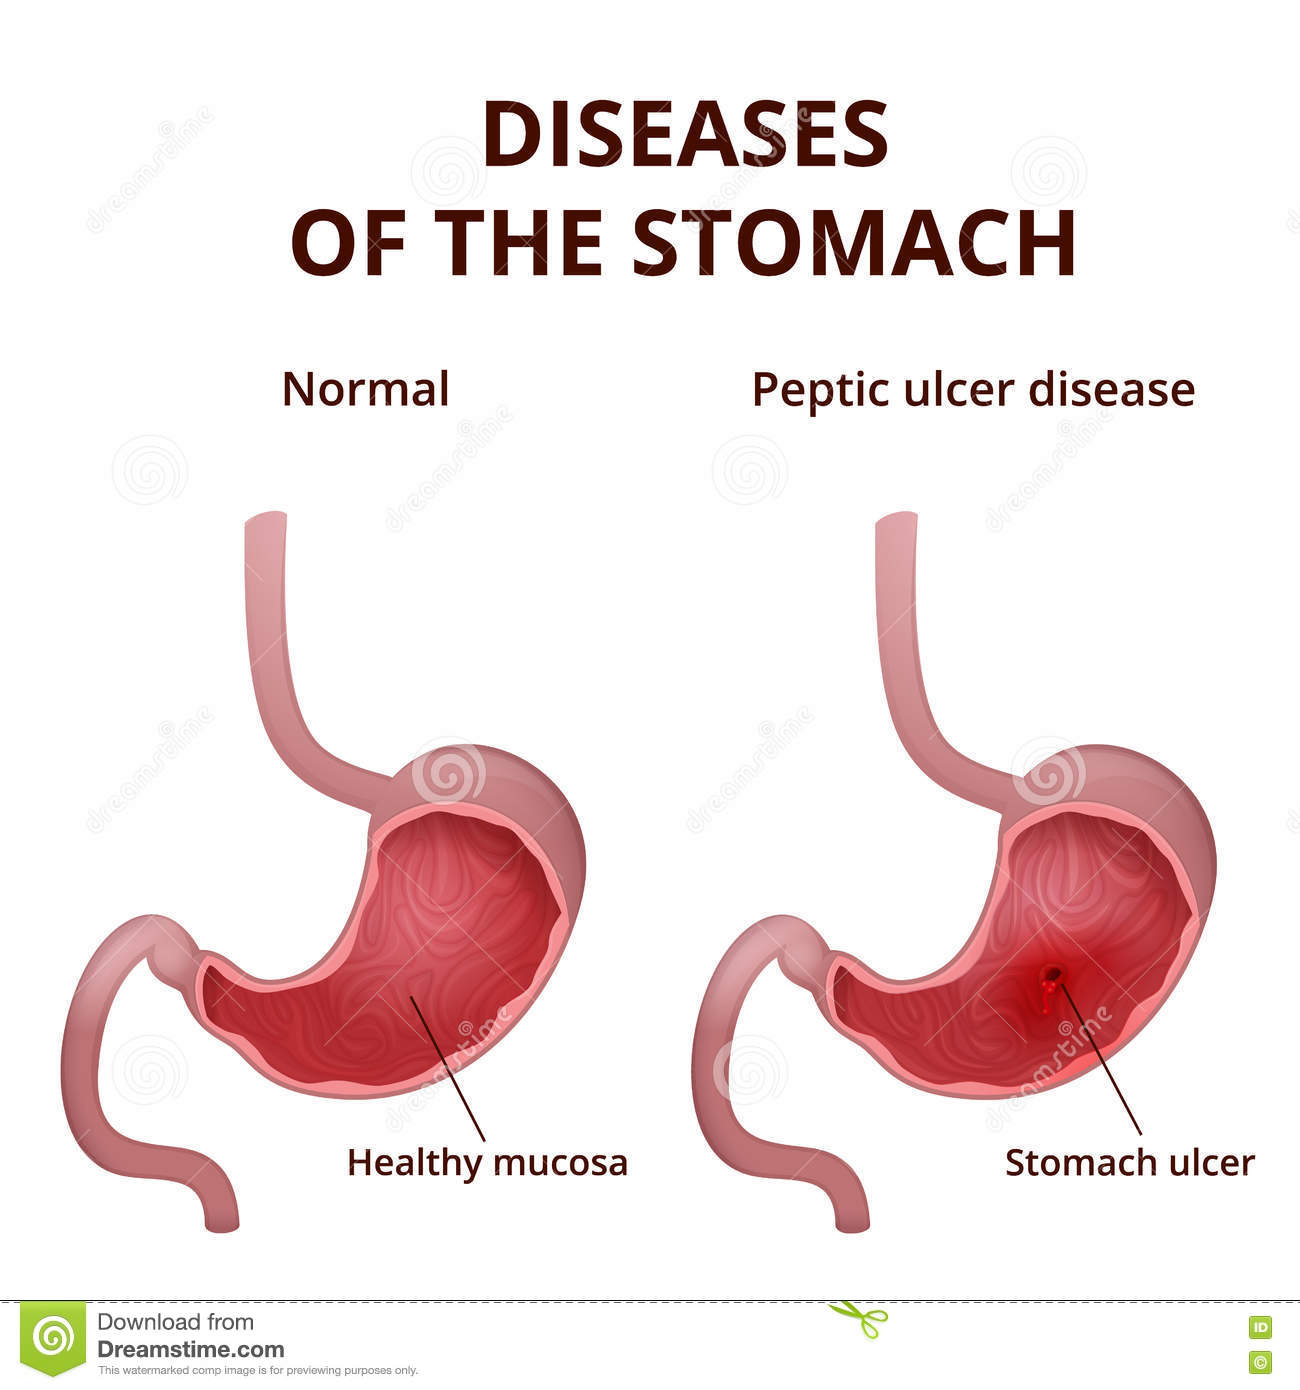 pathophysiology of peptic ulcer disease diagram household wiring diagrams stomach poster cartoon vector cartoondealer